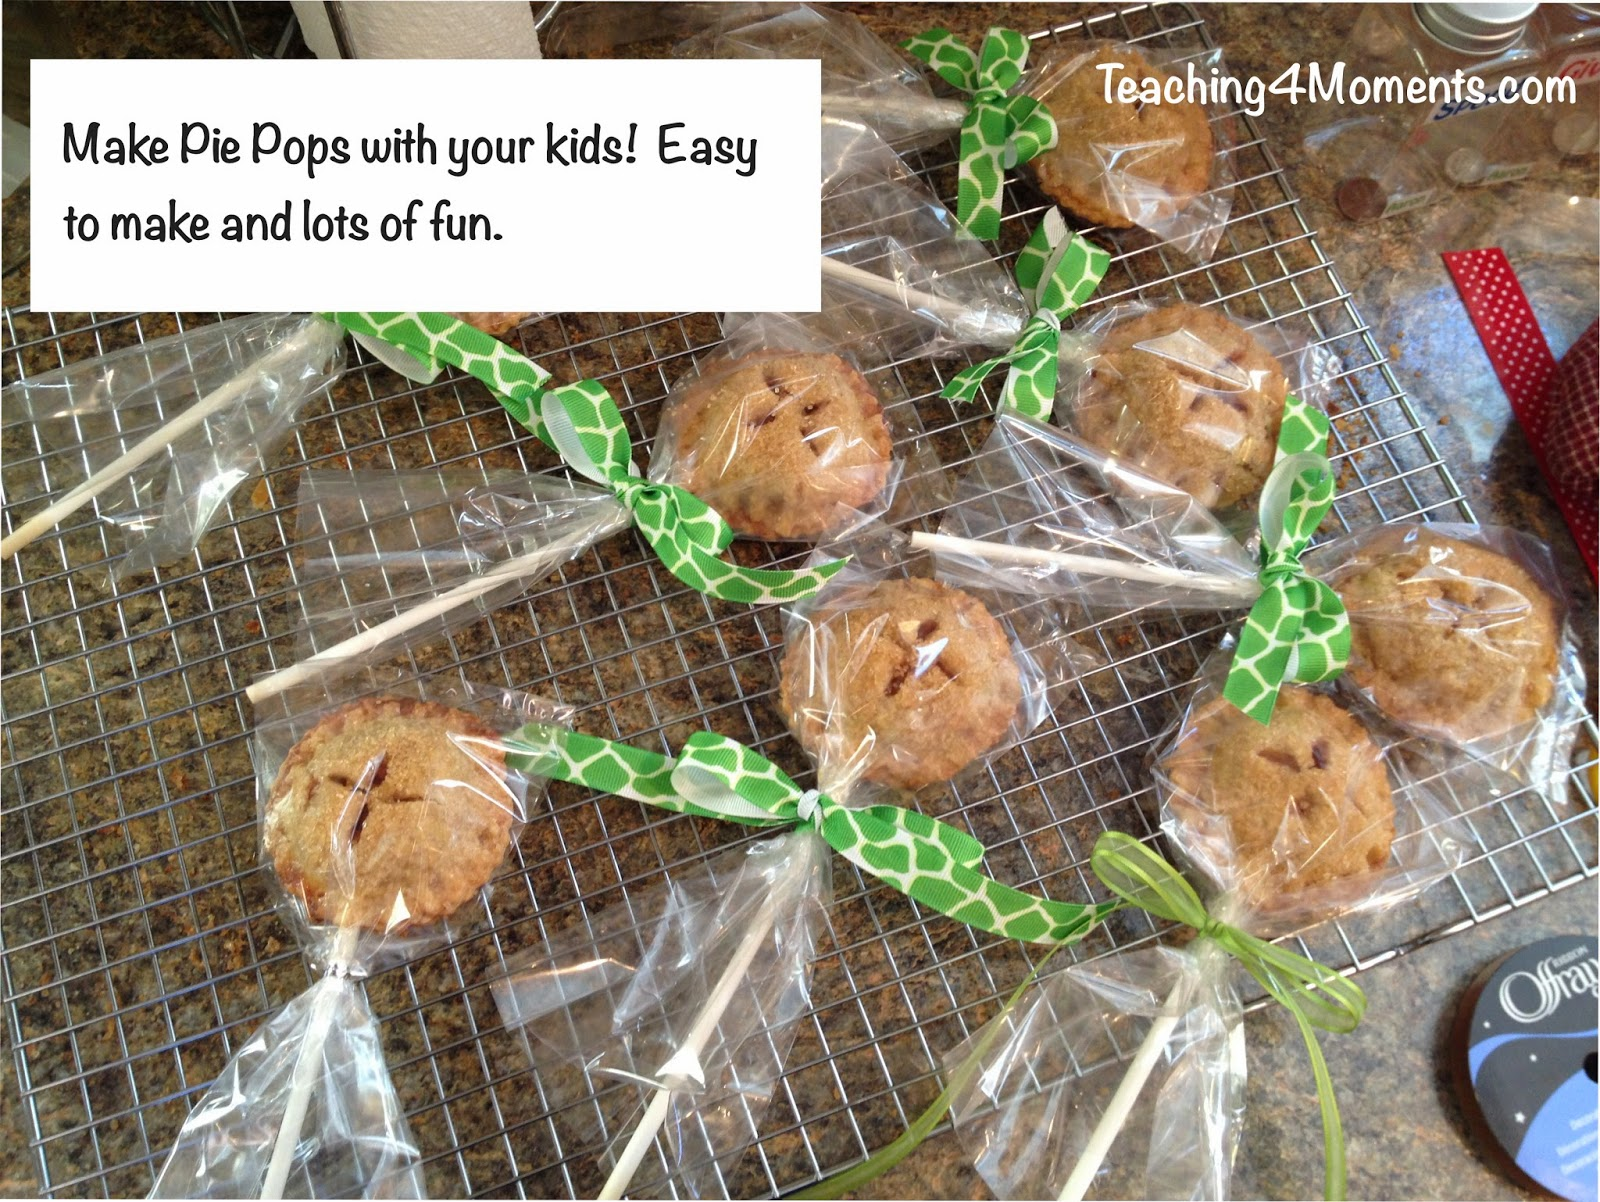 Making pie pops with your kids!